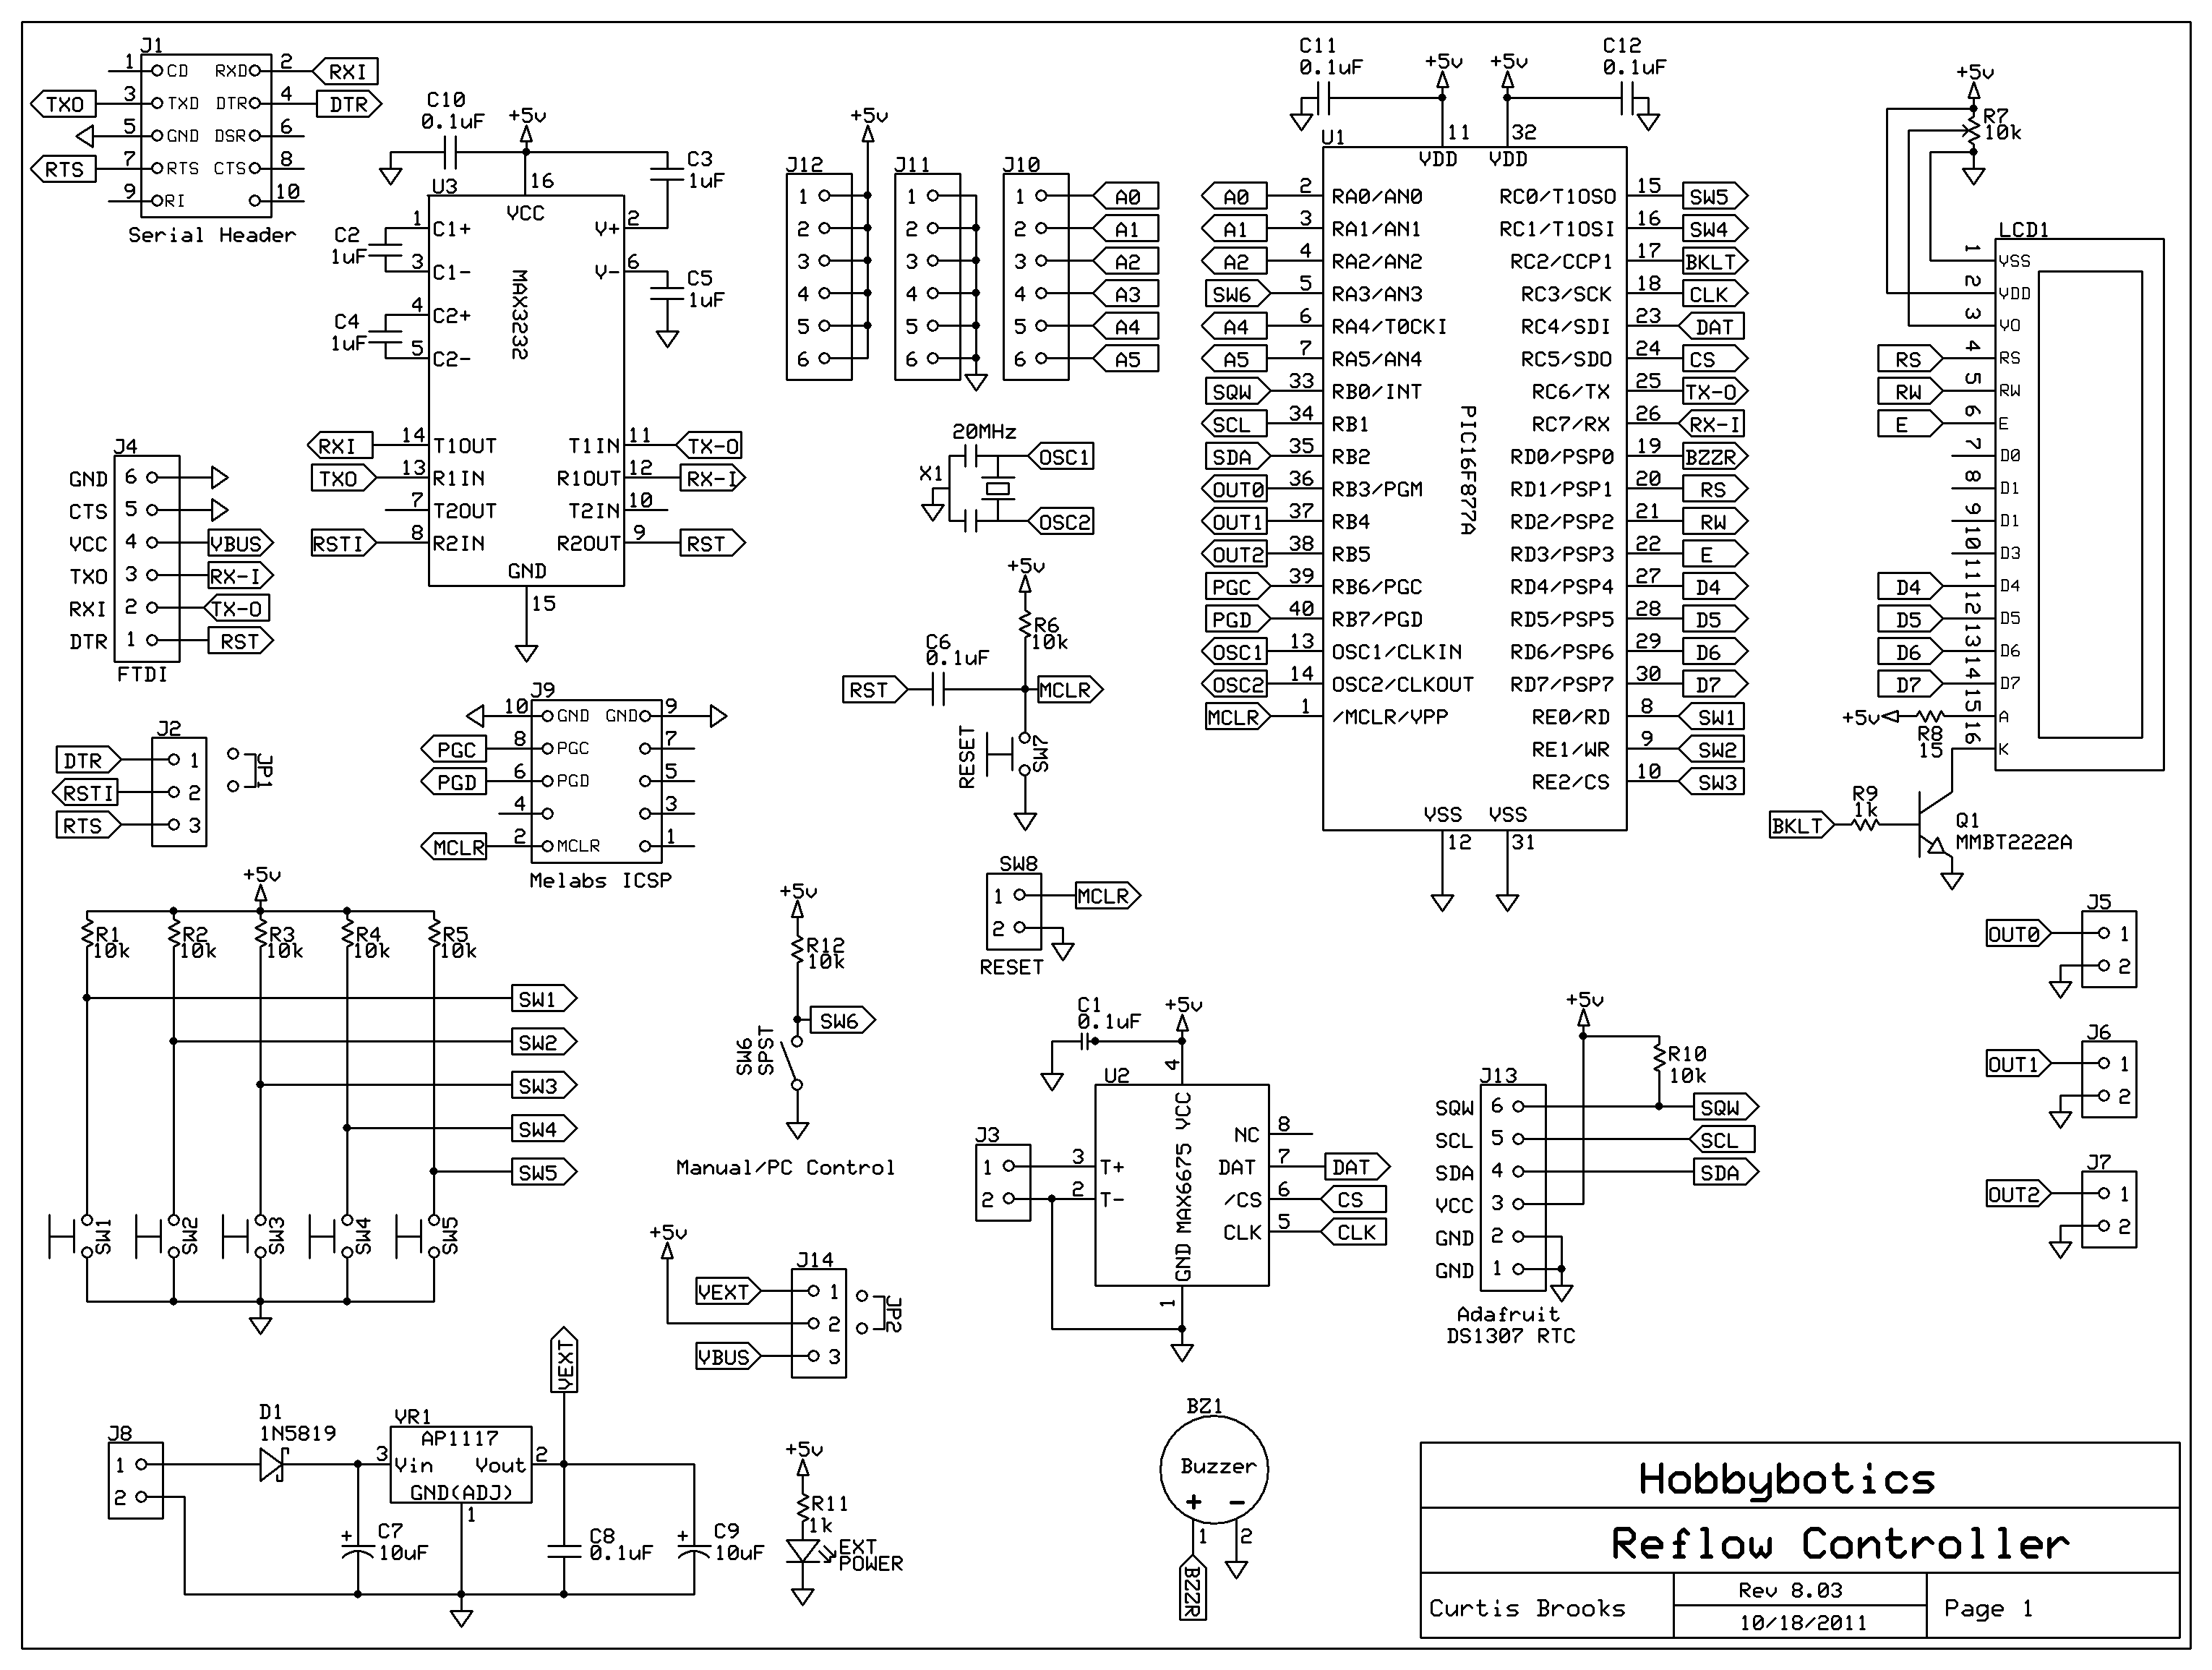 Hobbybotics Reflow Controller V803 Schematic Circuits For The Hobbyist Pdf Electronics Circuit